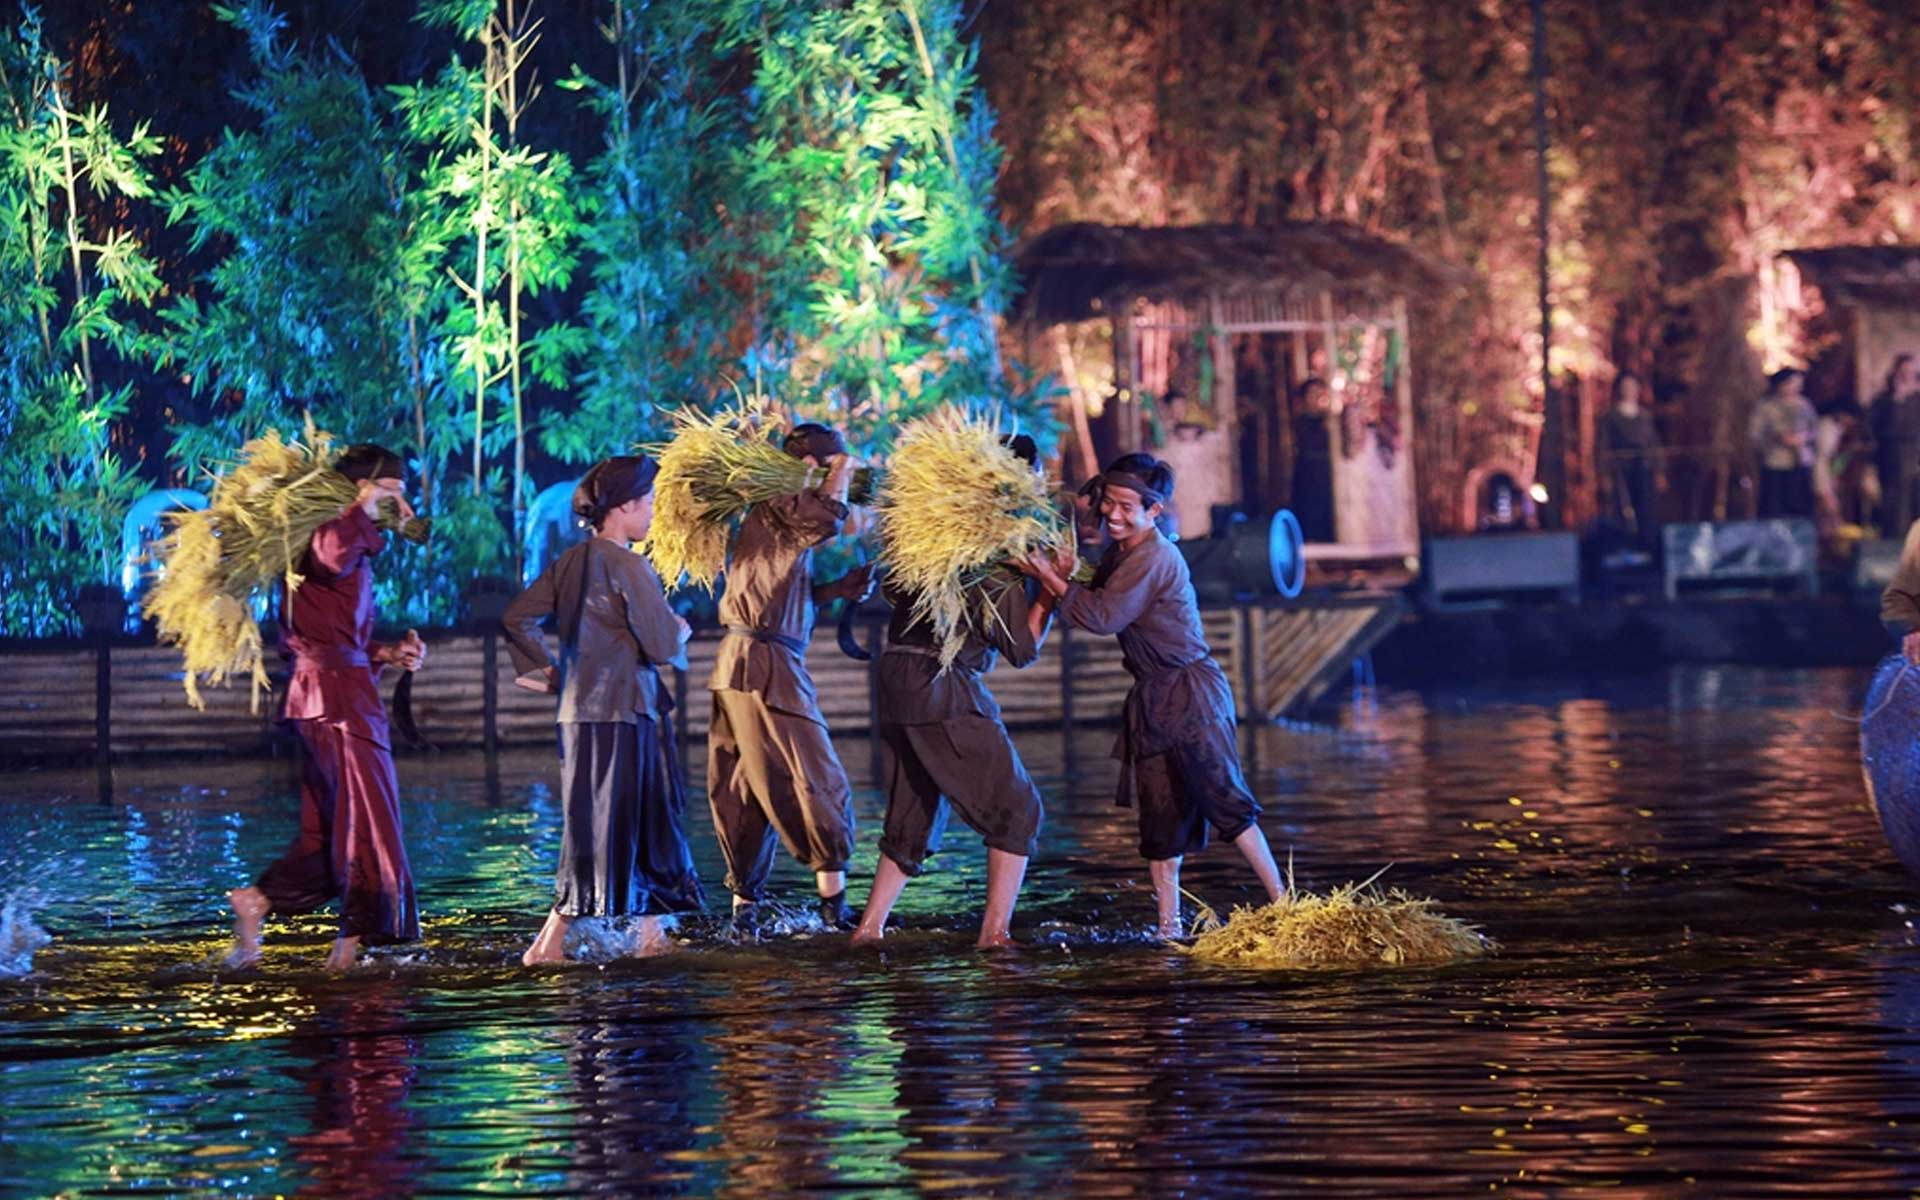 The Quintessence of Tonkin Show - A cultural experience in Hanoi